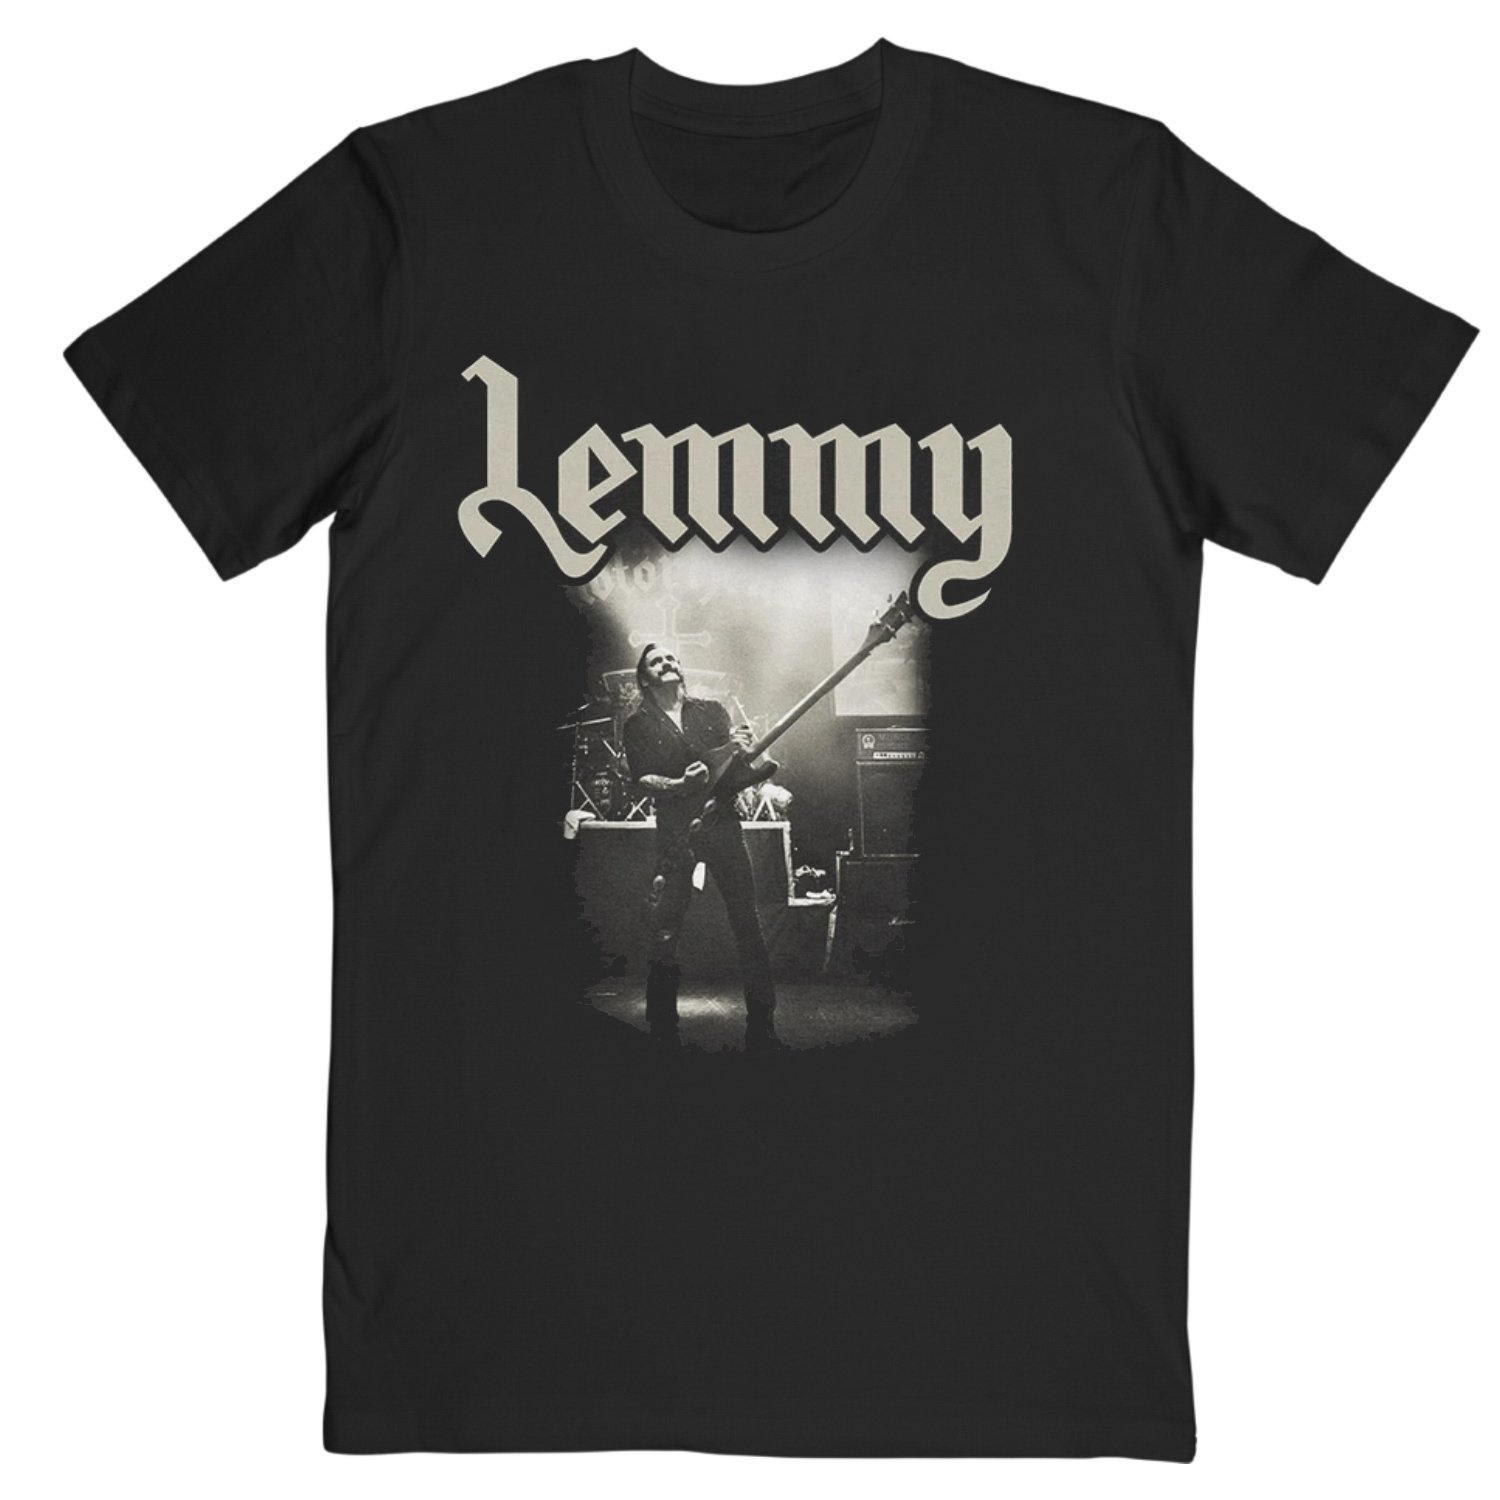 Motorhead - Lemmy Lived To Win Tee